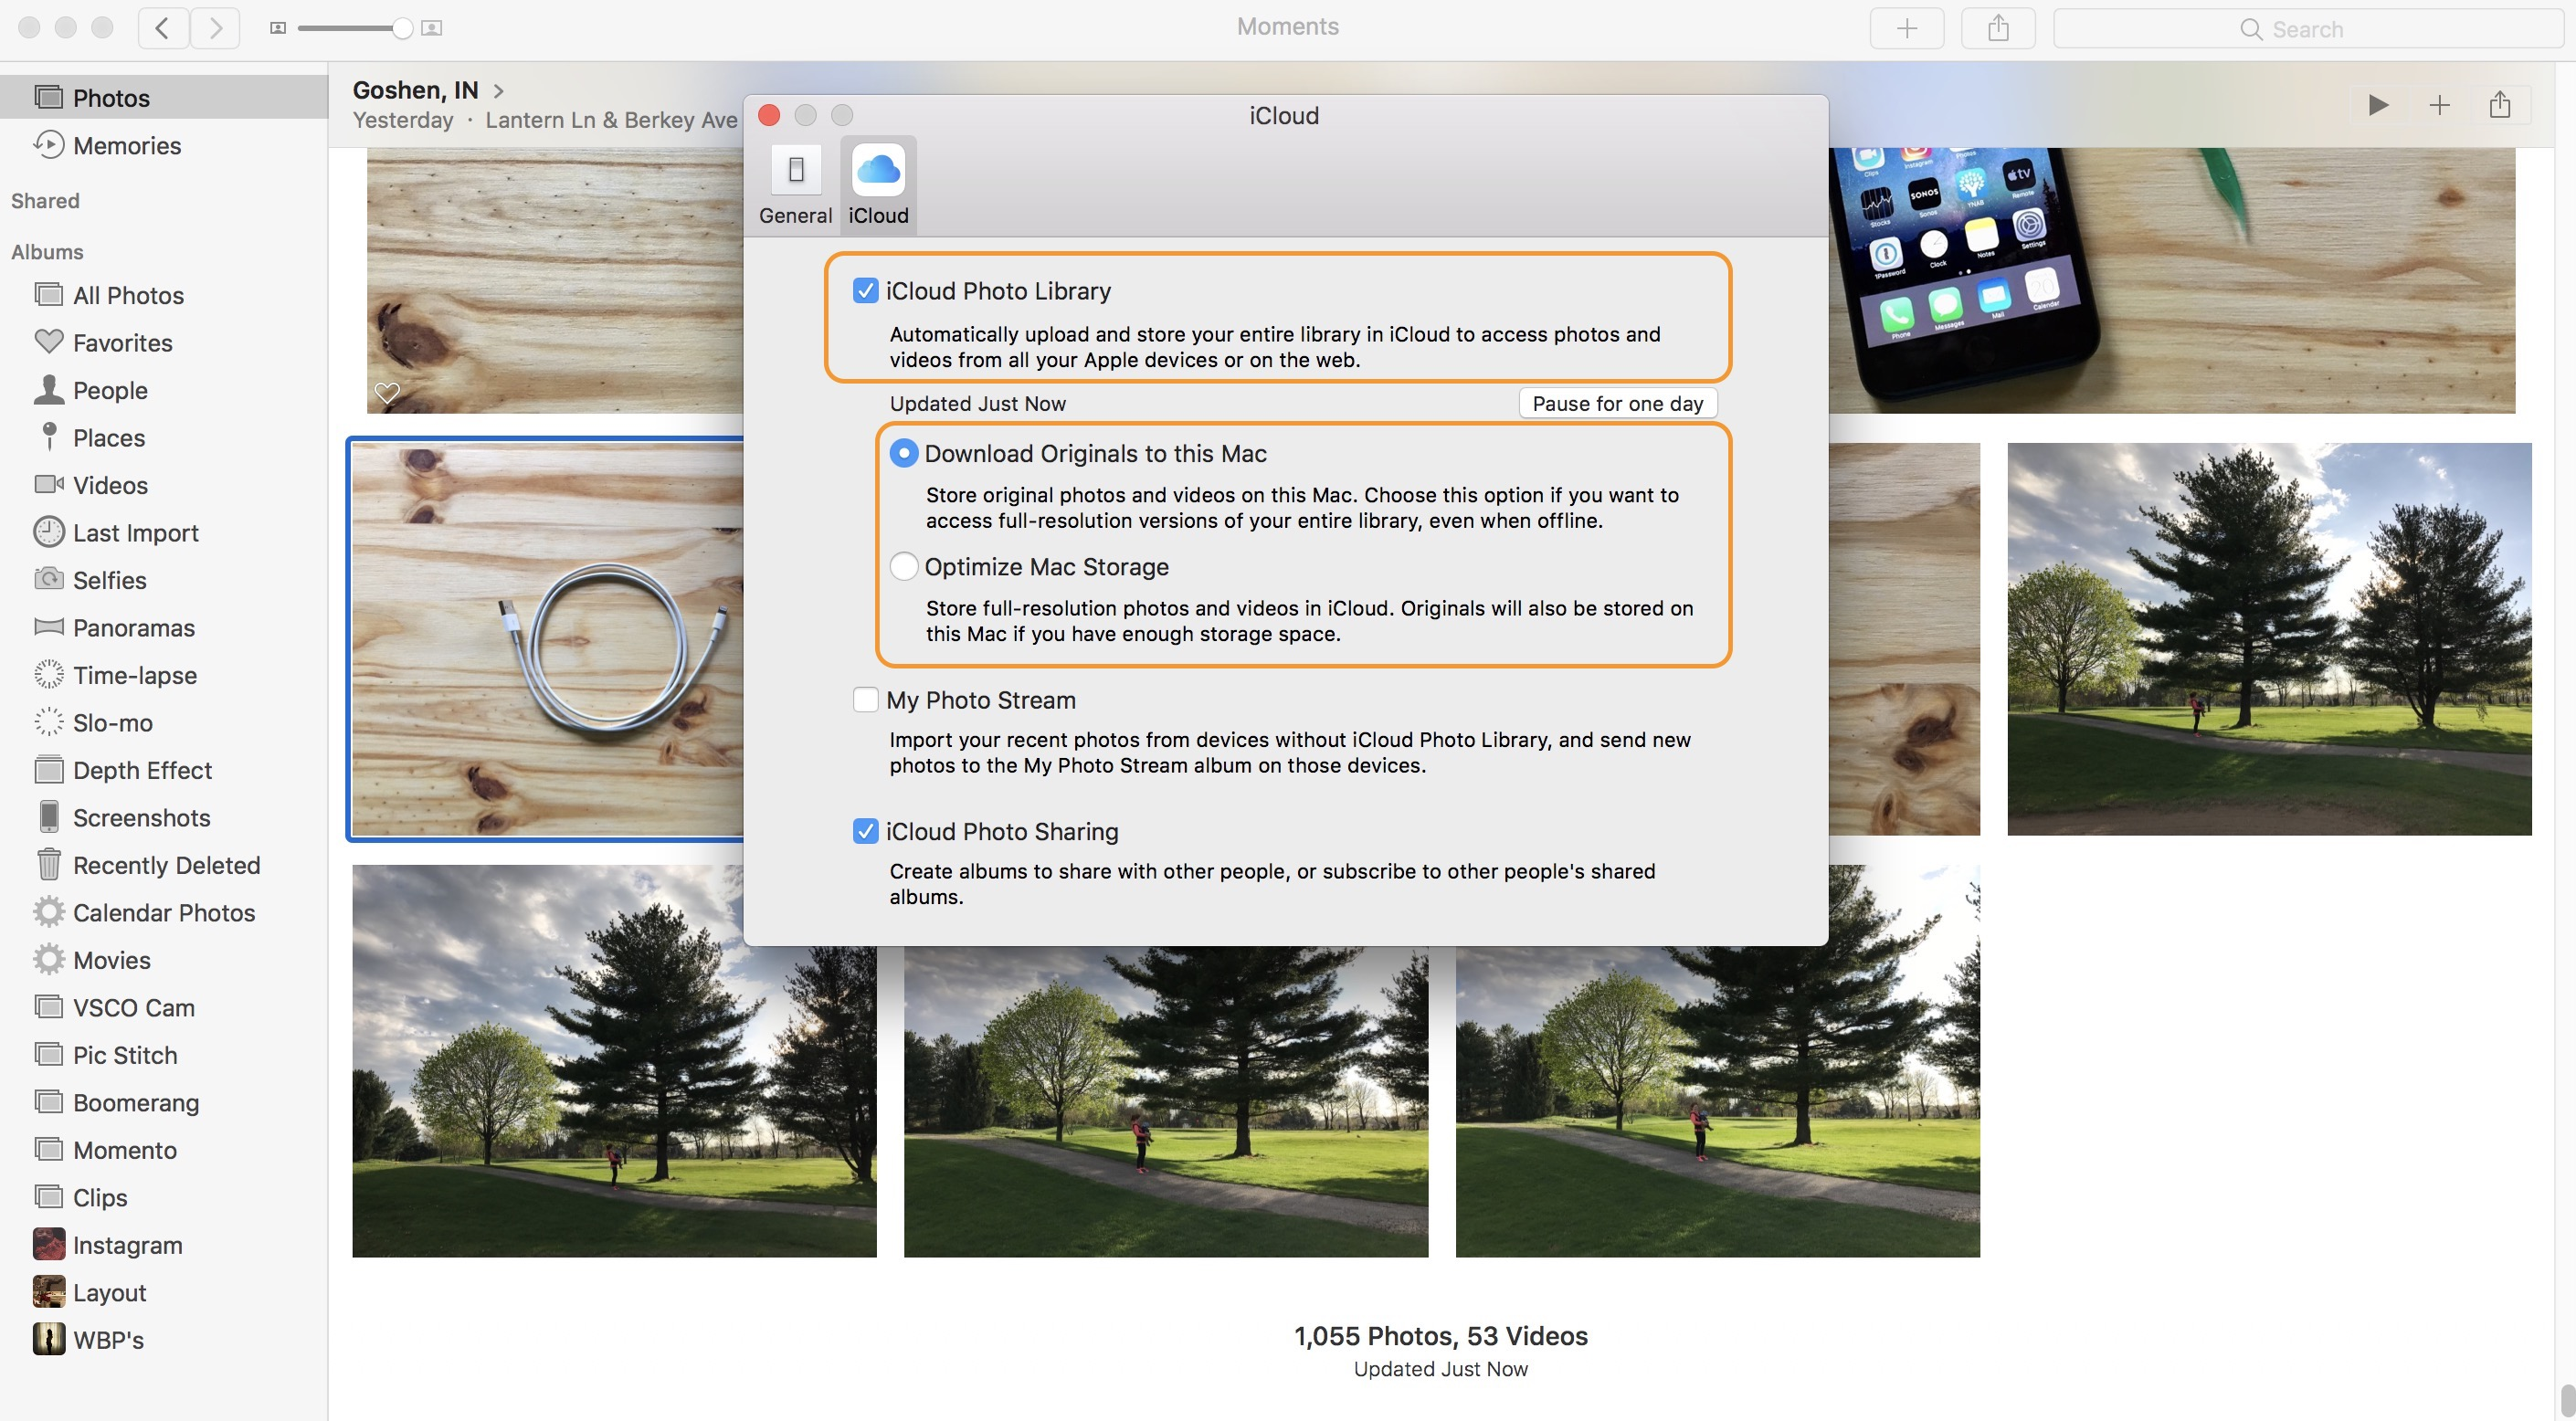 How To Upload Photos Into Icloud Photo Library From Iphone